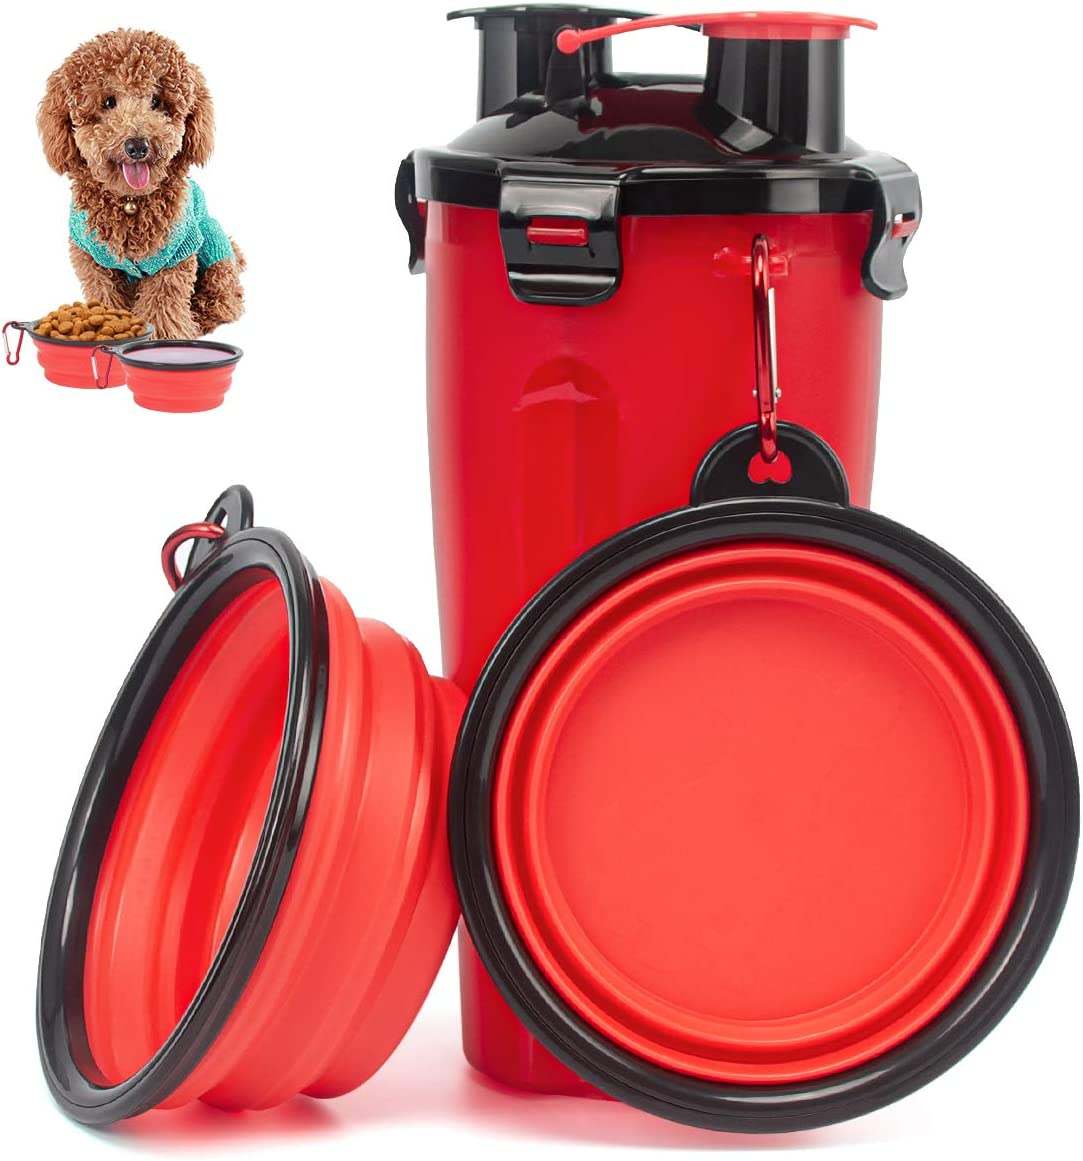 Esing Dog Water Bottles W/Bowls Pet Portable Drinking Bottle Puppy Travel Dispenser Doggie Kettle Kittens Feeding Cup W/Food Container (Red)